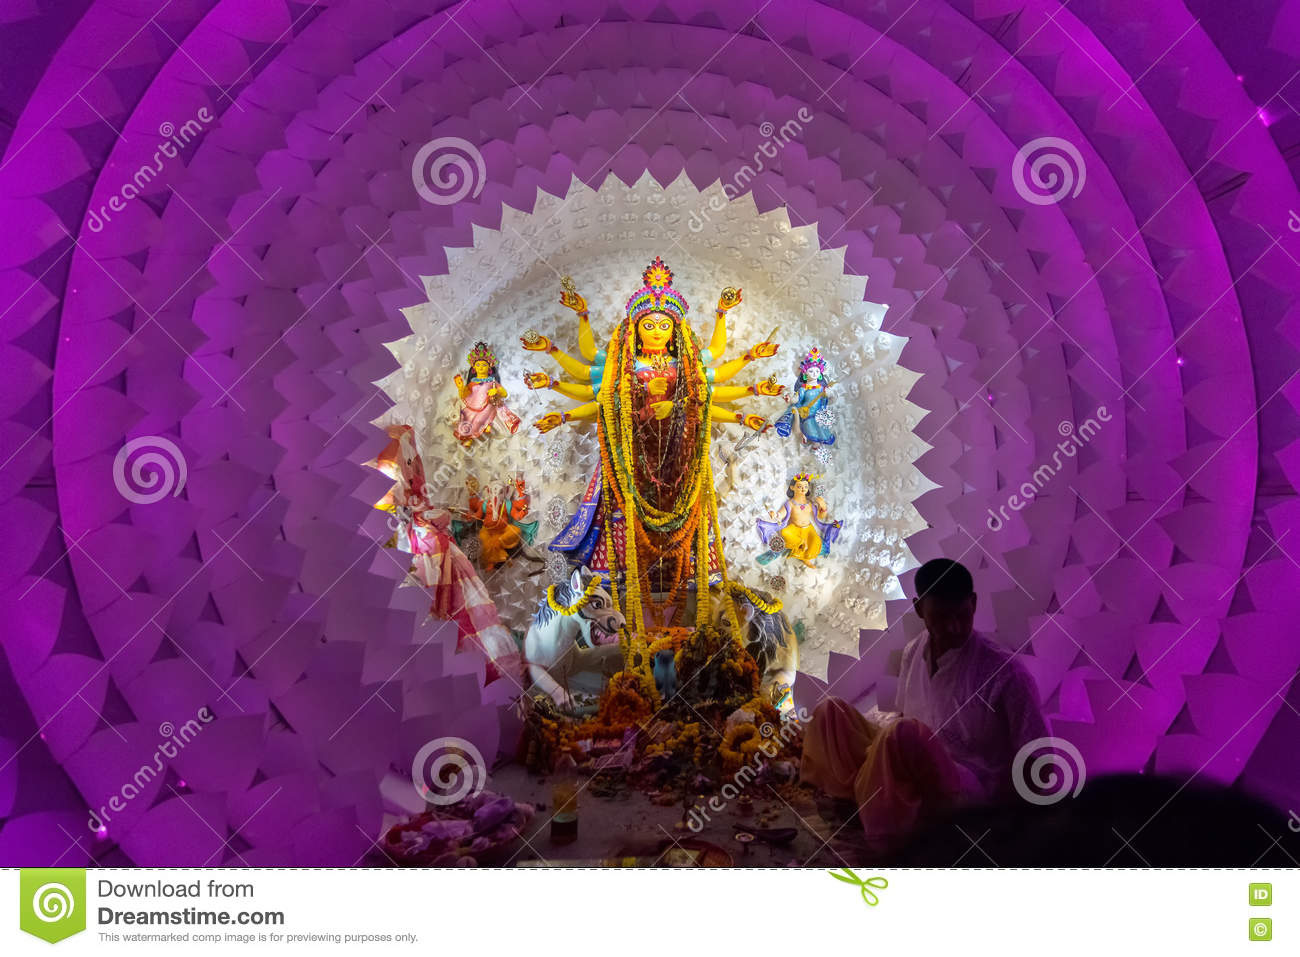 Night image of decorated durga puja pandal kolkata west bengal night image of decorated durga puja pandal kolkata west bengal india thecheapjerseys Images